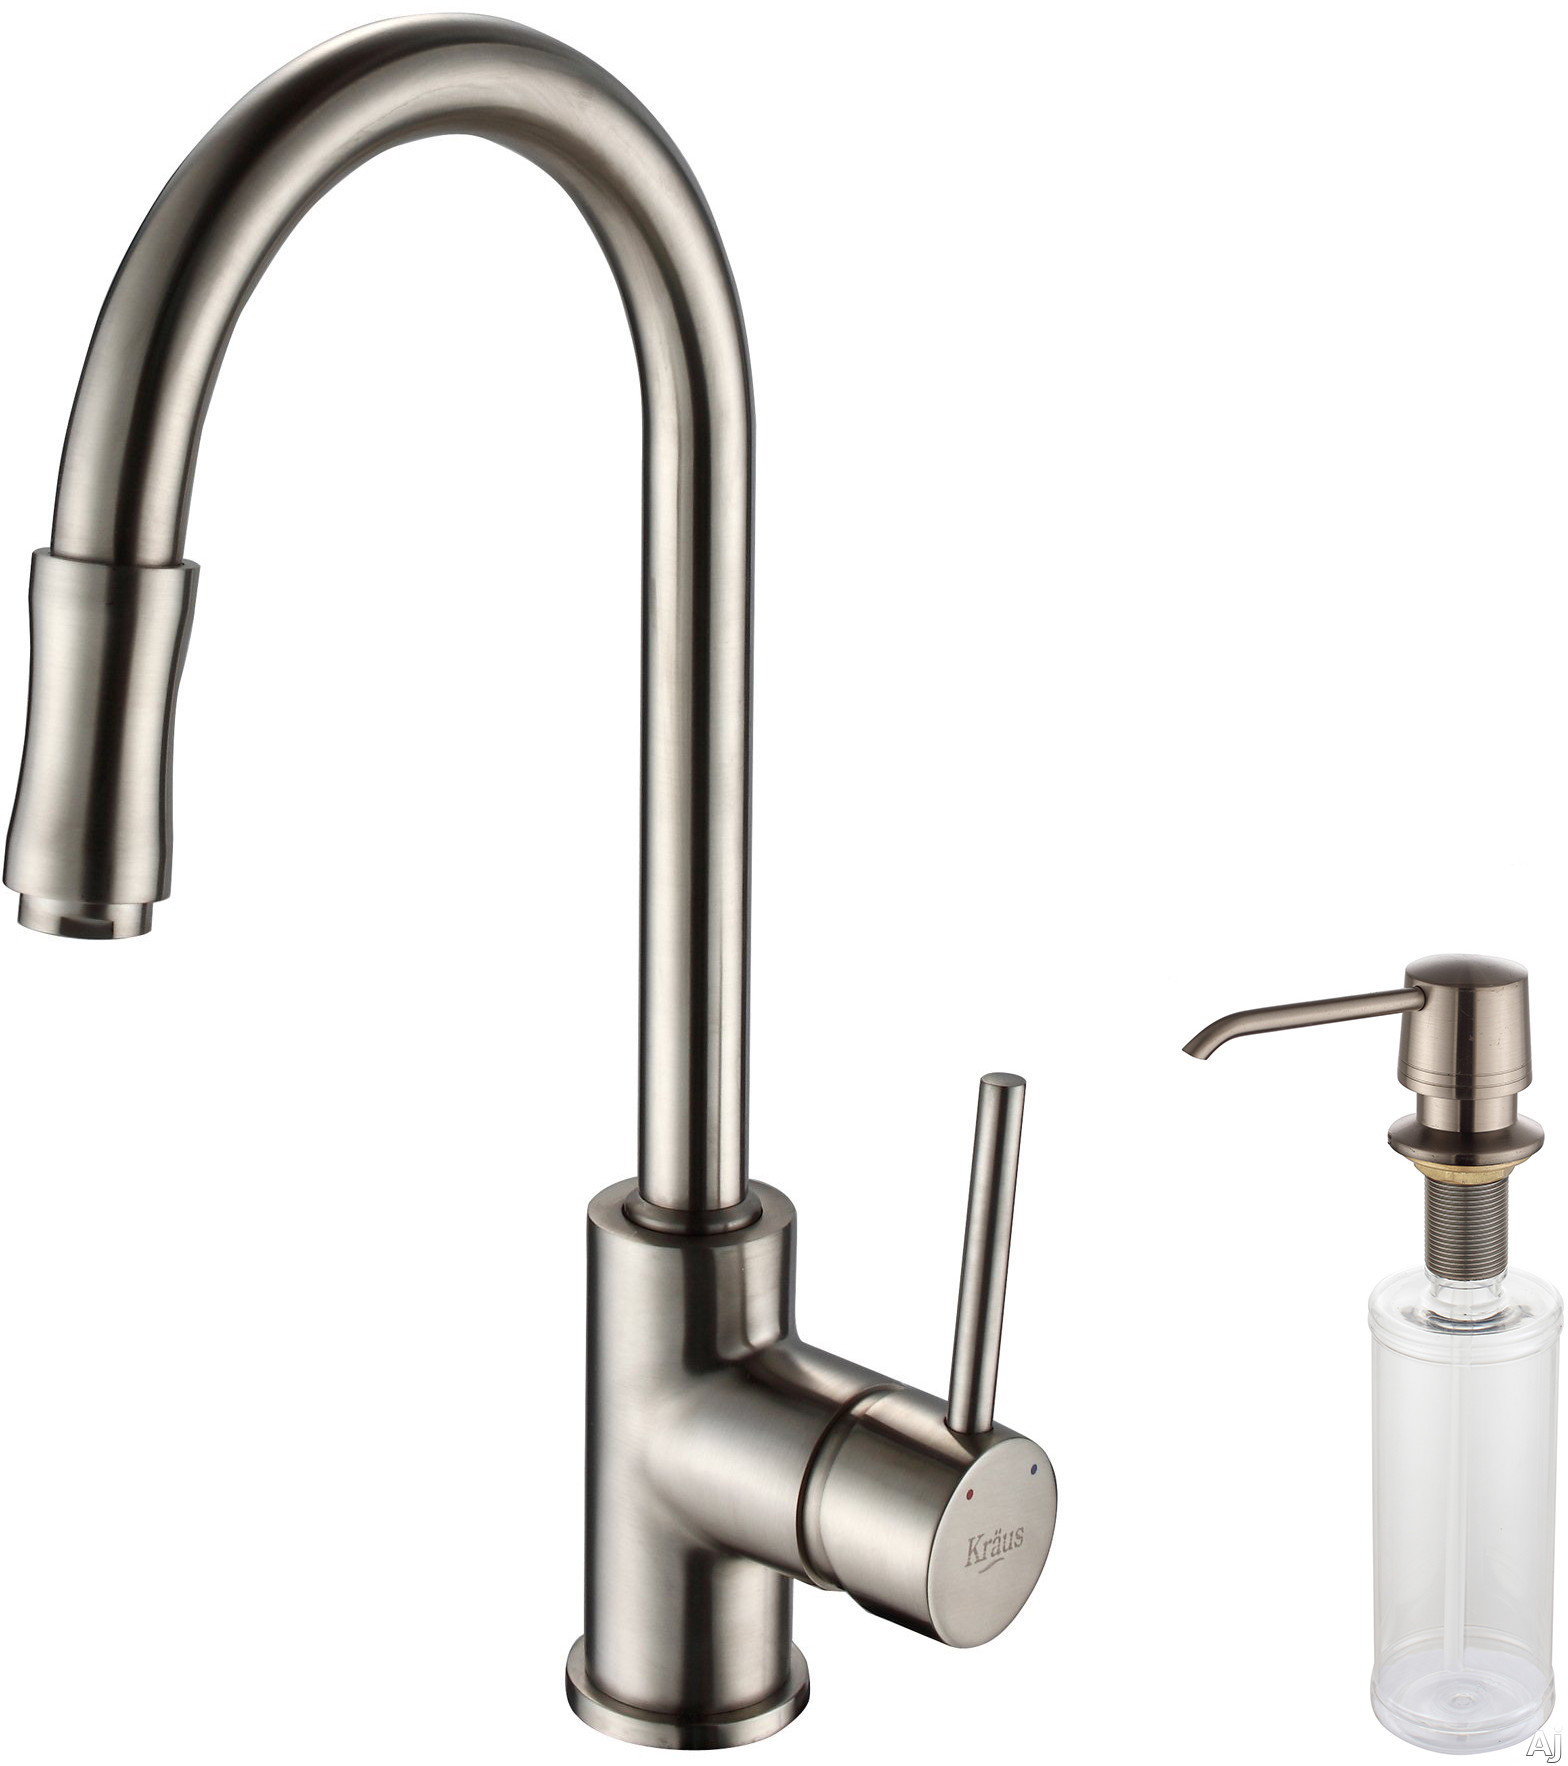 spray head kitchen faucet copper accents kraus kpf1622ksd30sn single lever pull out